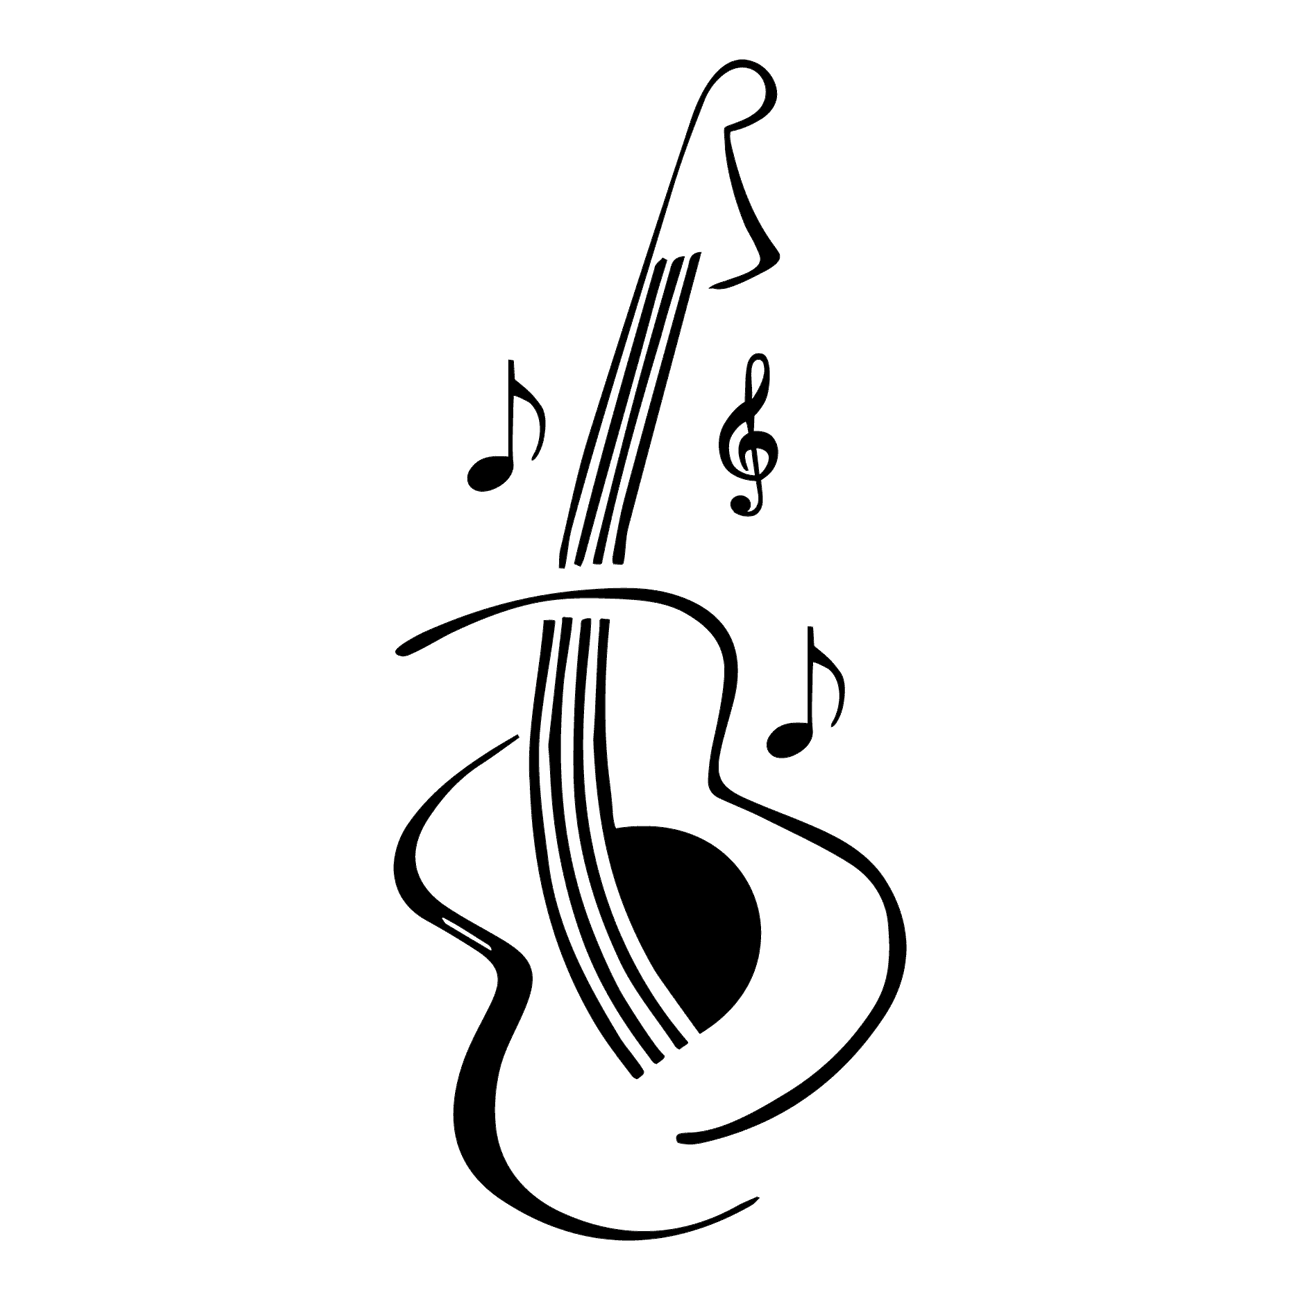 Drawing scrolls violin. Image result for music